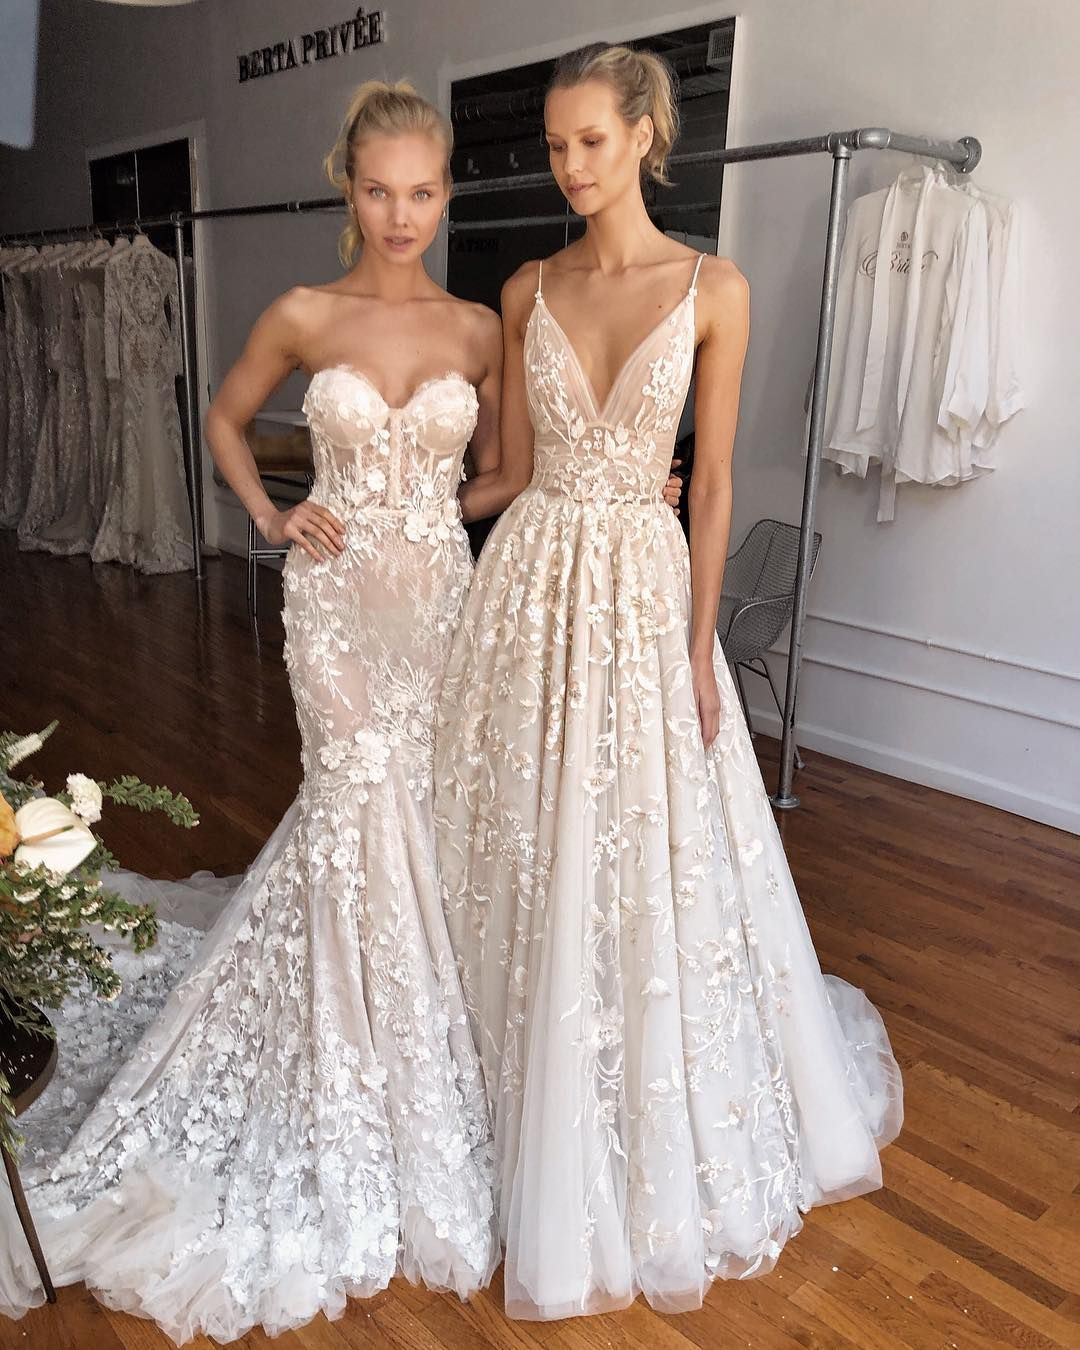 60 Hottest Berta Wedding Dresses 2020 In 2020 With Images Dream Wedding Dresses Wedding Dresses Berta Wedding Dress